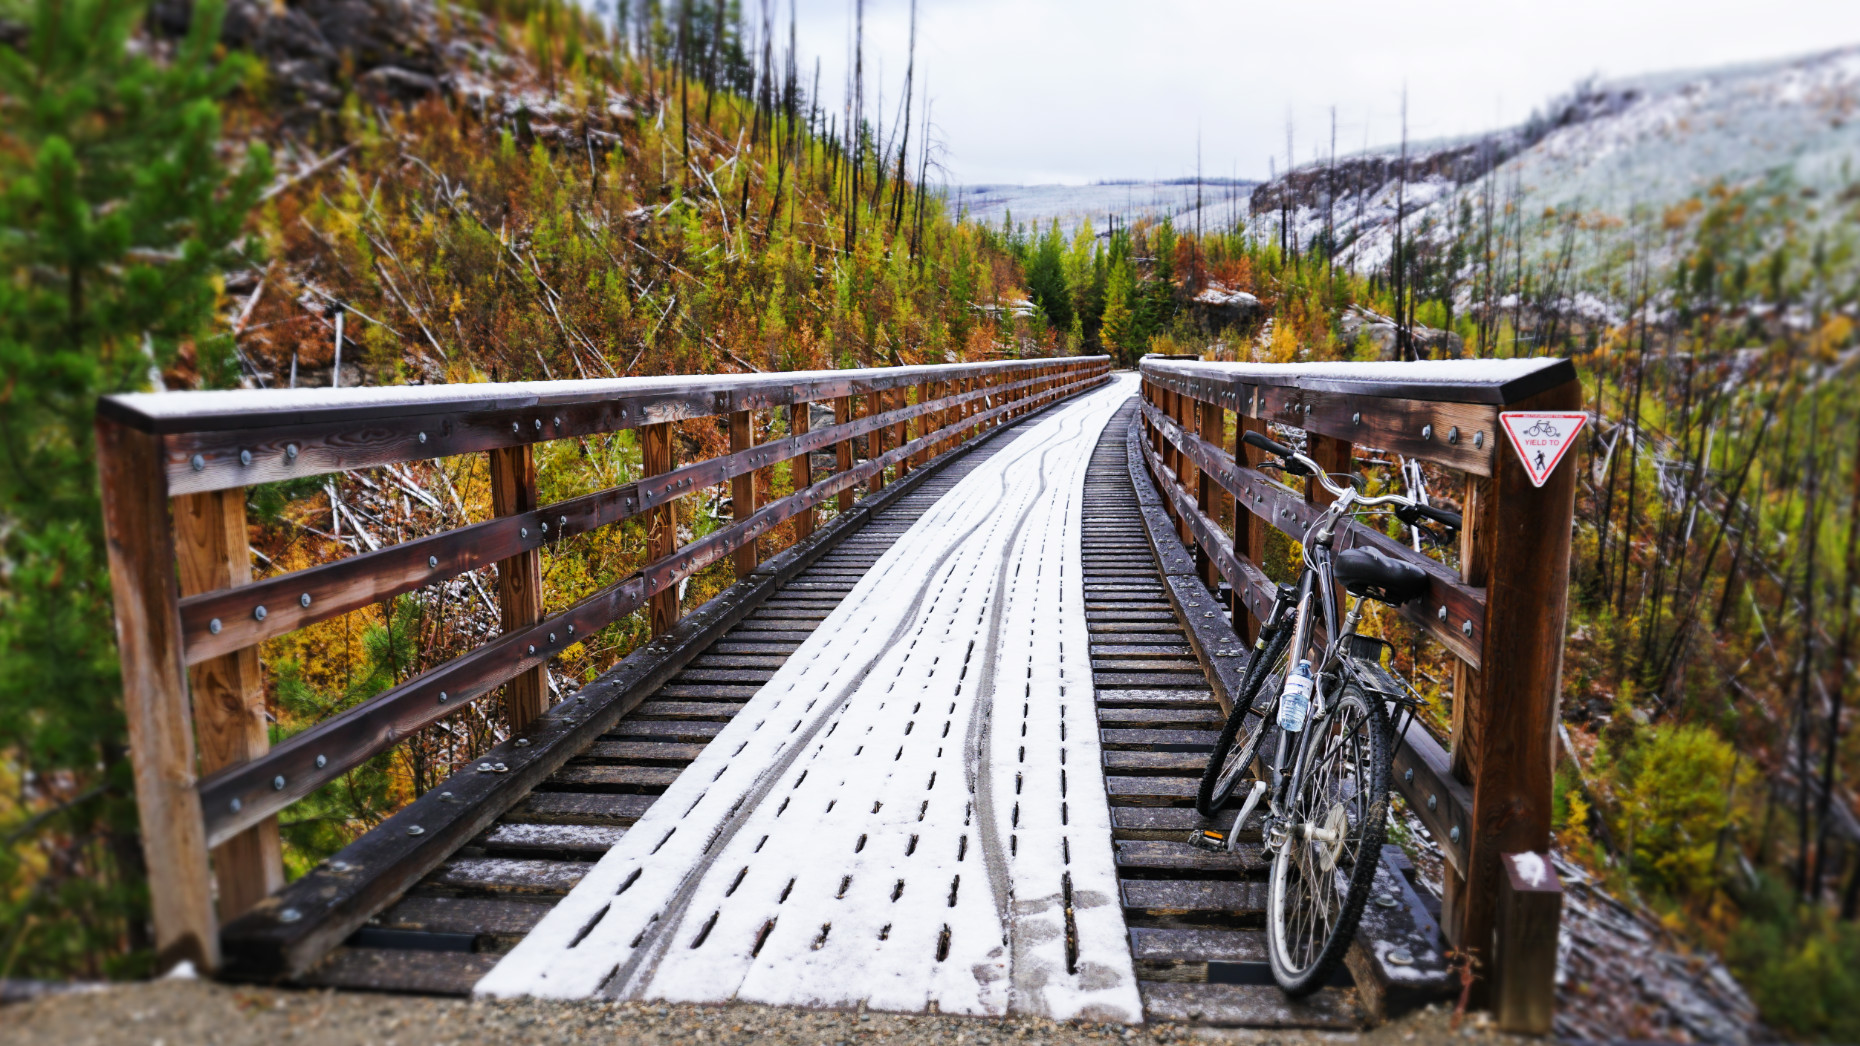 Myra Canyon, trestles  (Image: Lottie Gross)